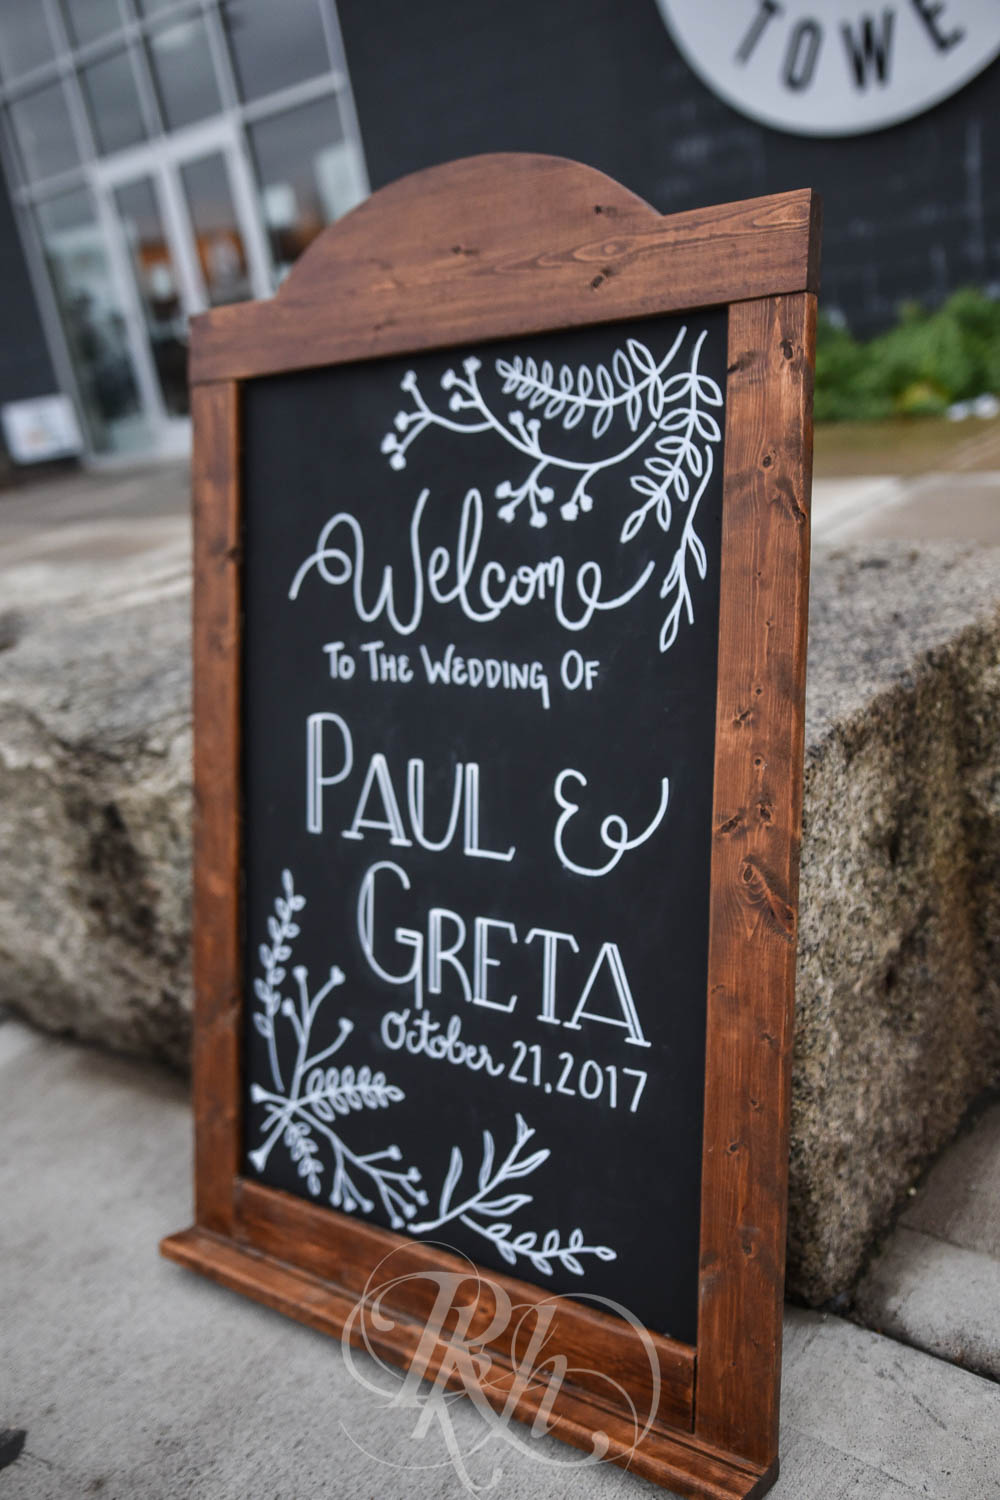 Greta & Paul - Minnesota Wedding Photography - Paikka - RKH Images - Blog (19 of 48).jpg